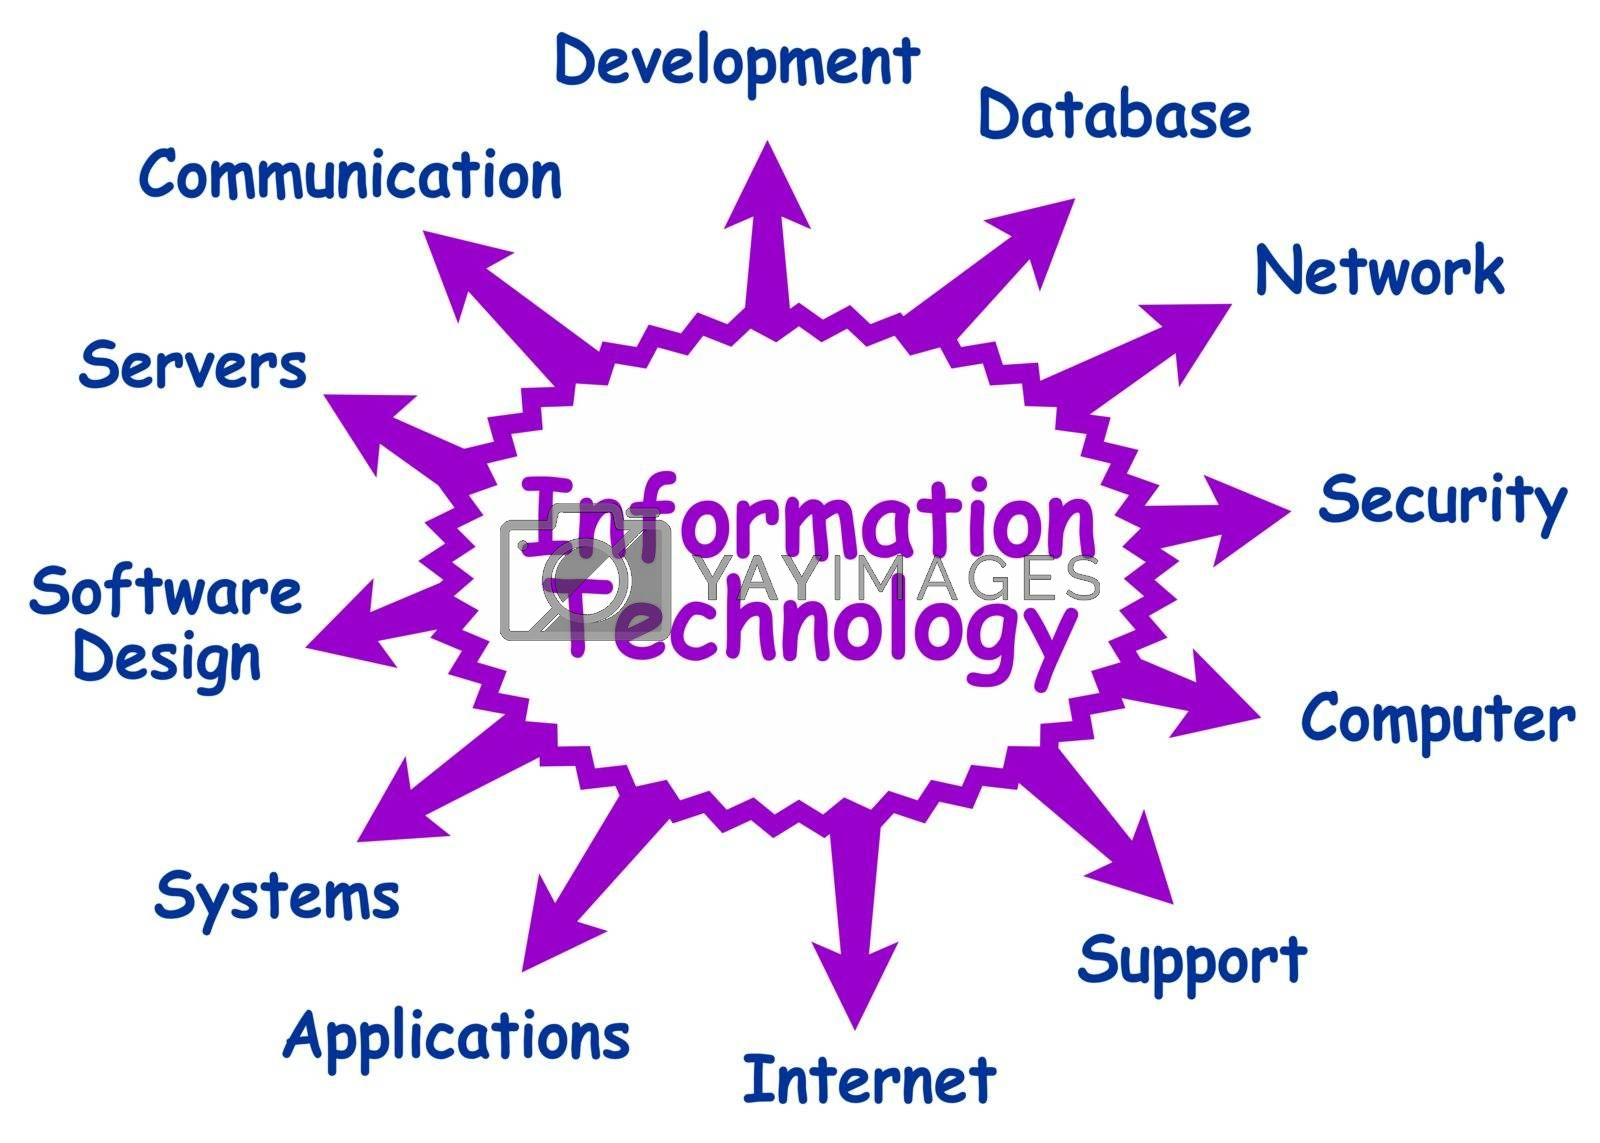 Some possible topics about information technology (IT)